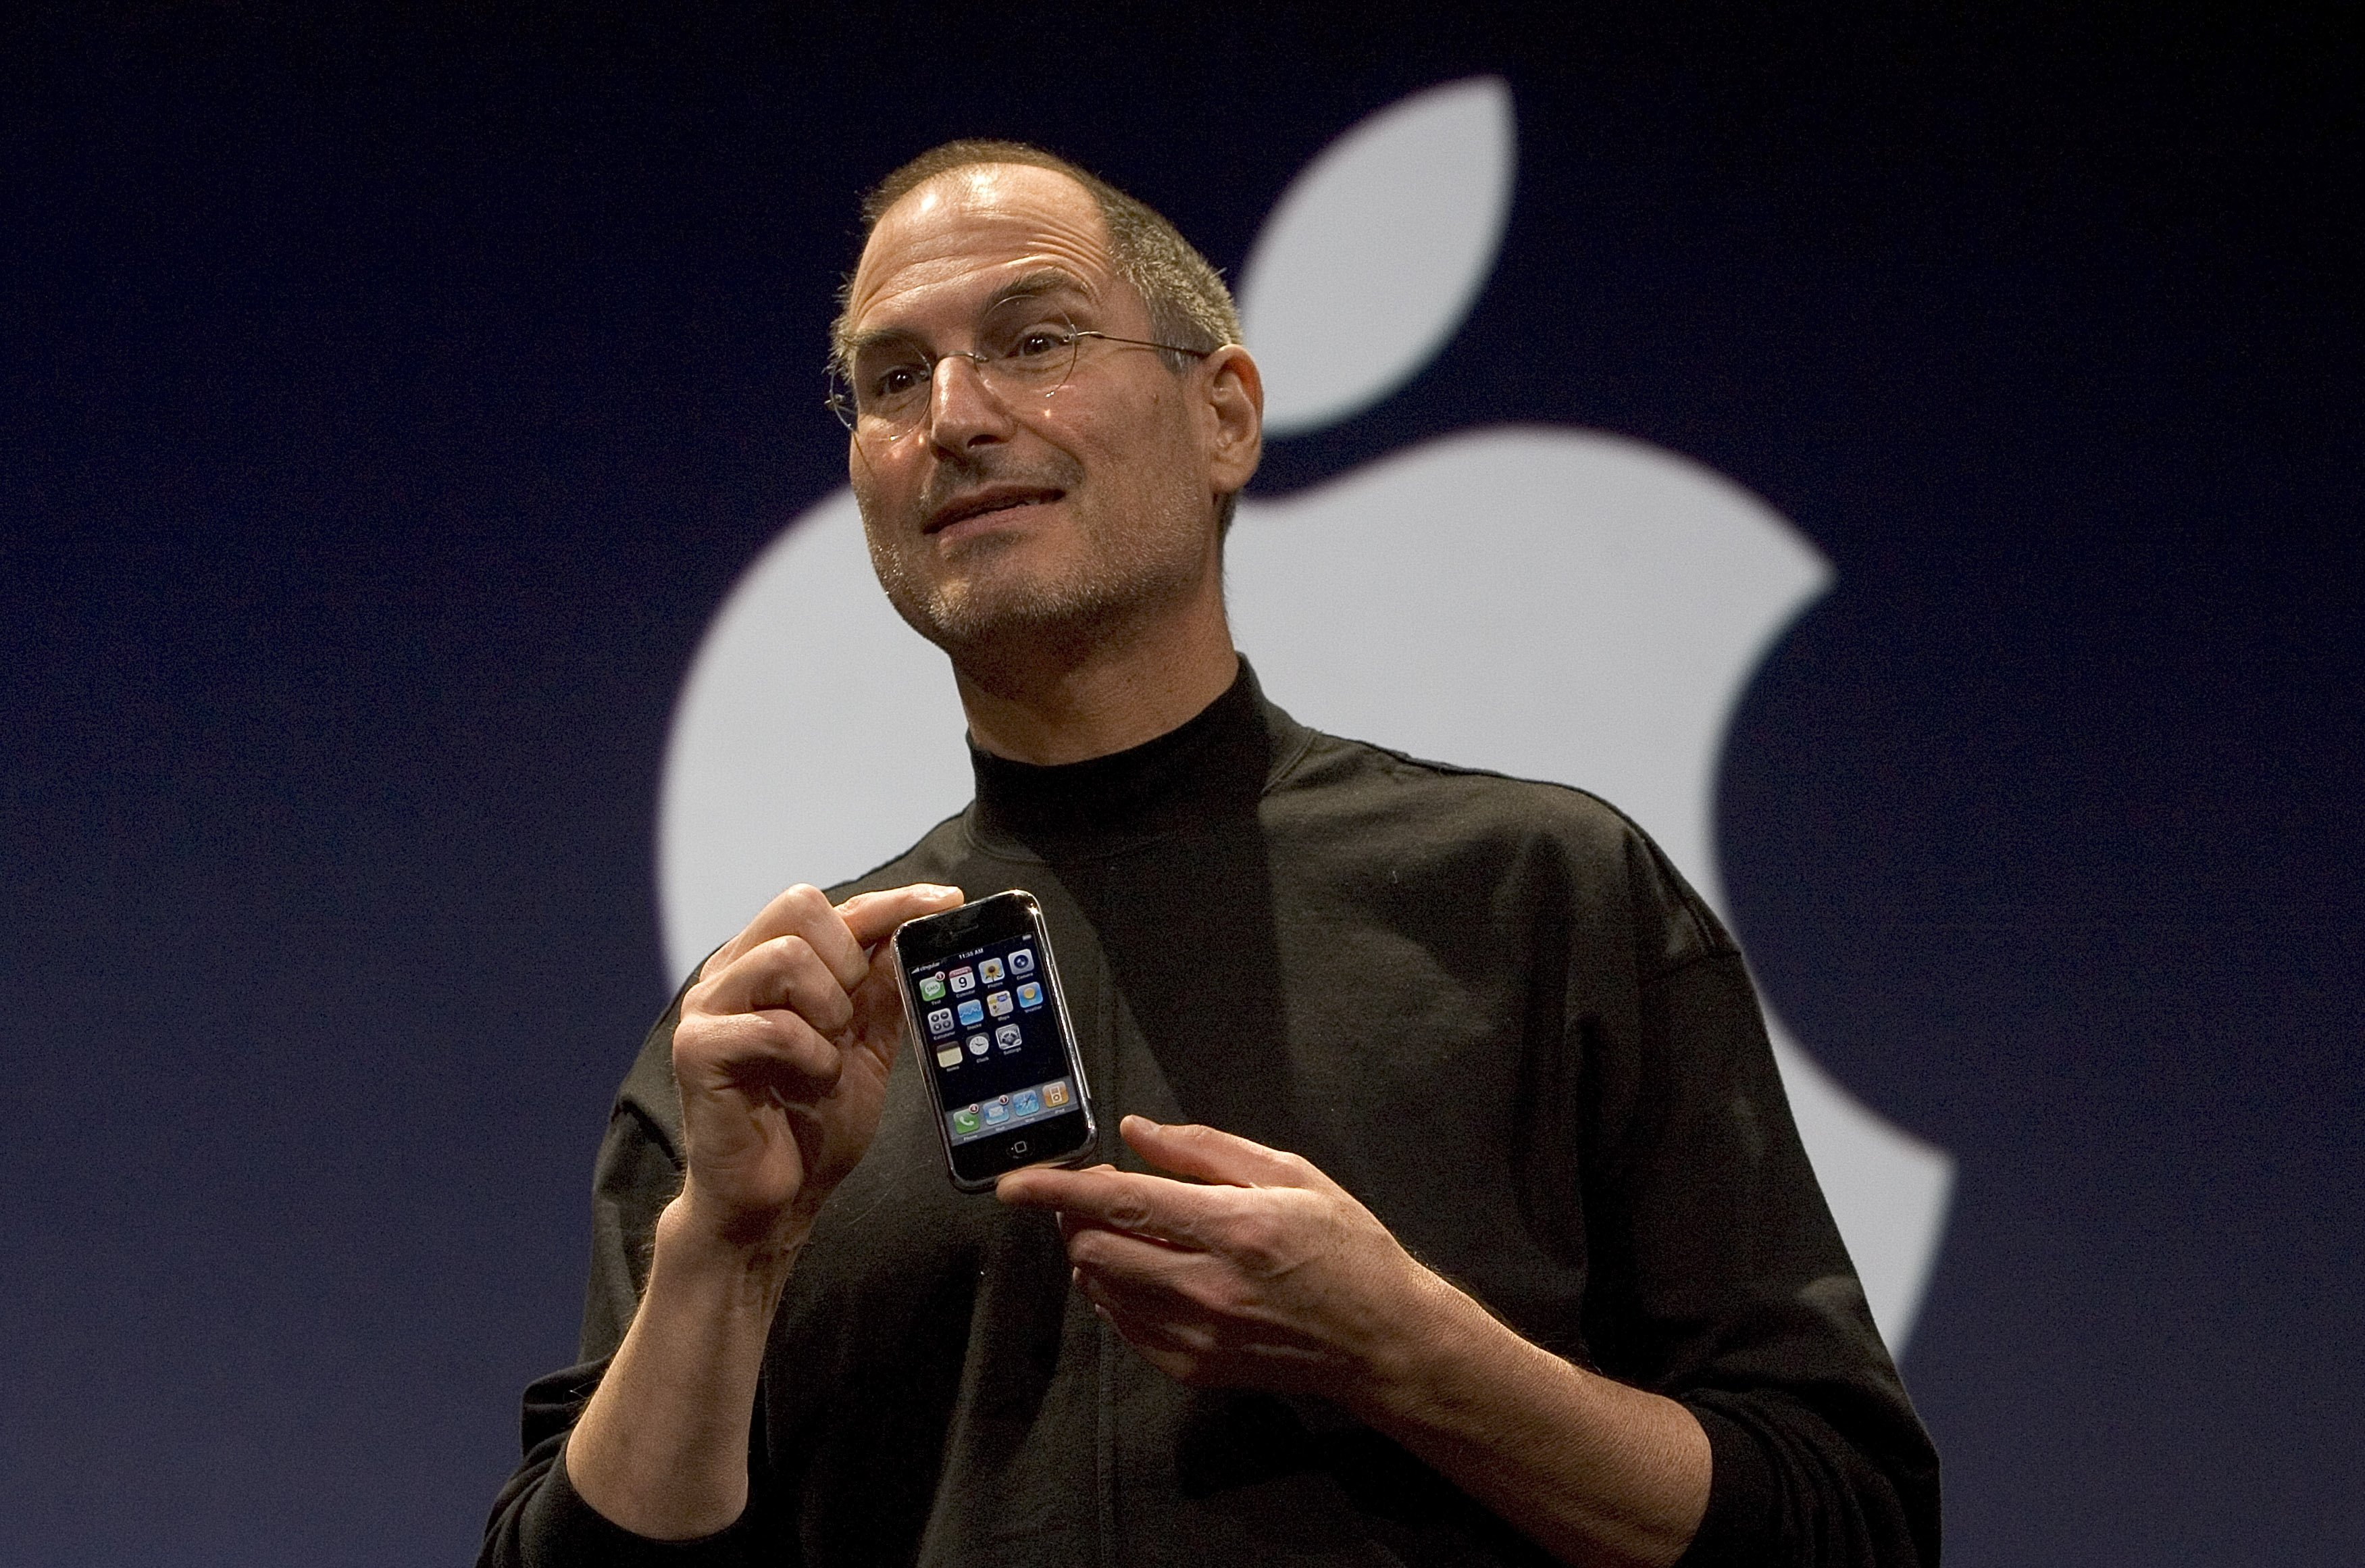 Steve Jobs Unveils Apple iPhone At MacWorld Expo